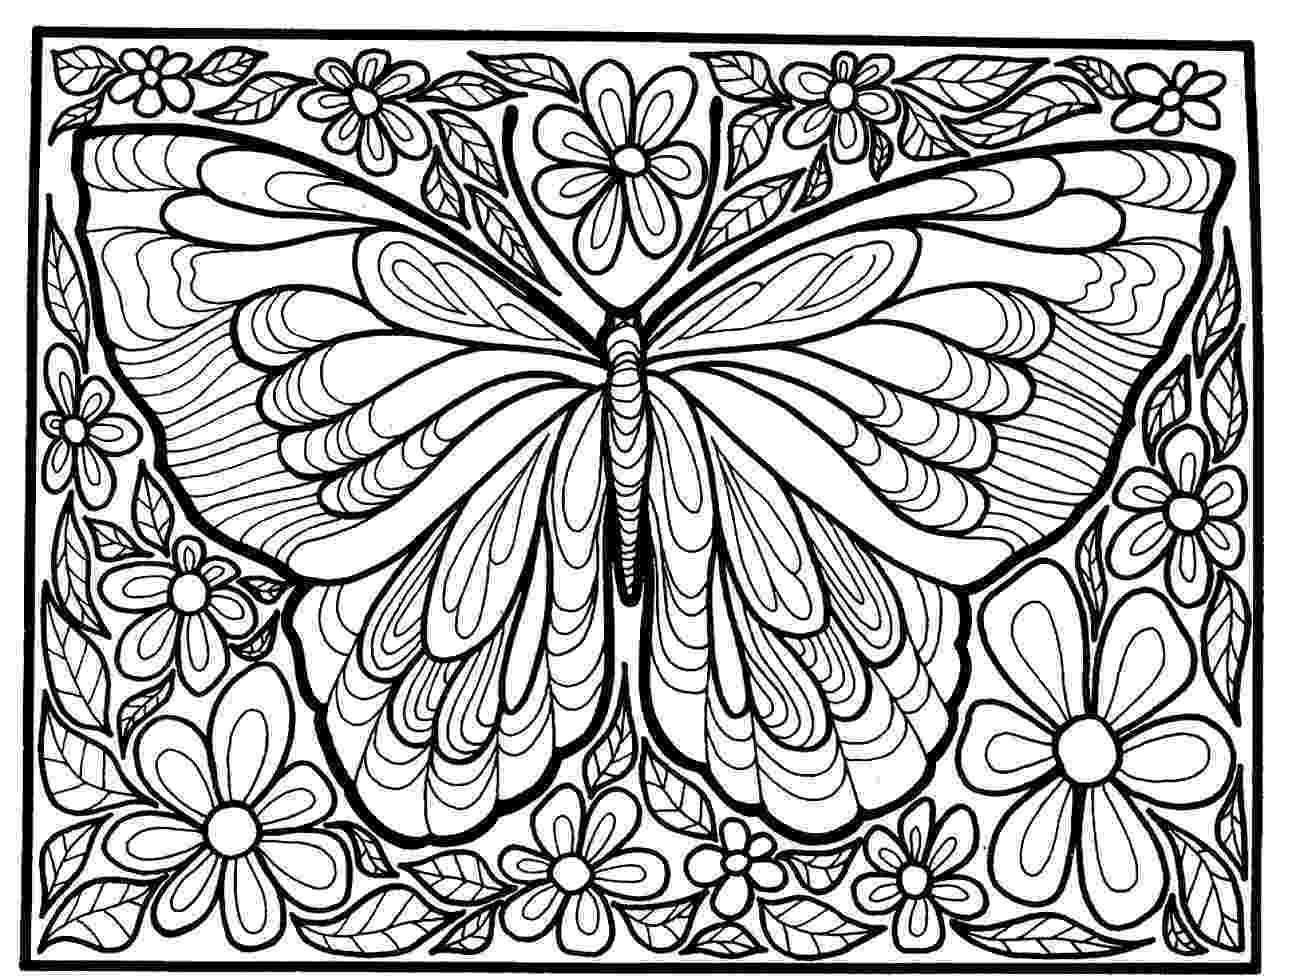 printable butterfly coloring page simple butterfly coloring pages getcoloringpagescom butterfly printable coloring page